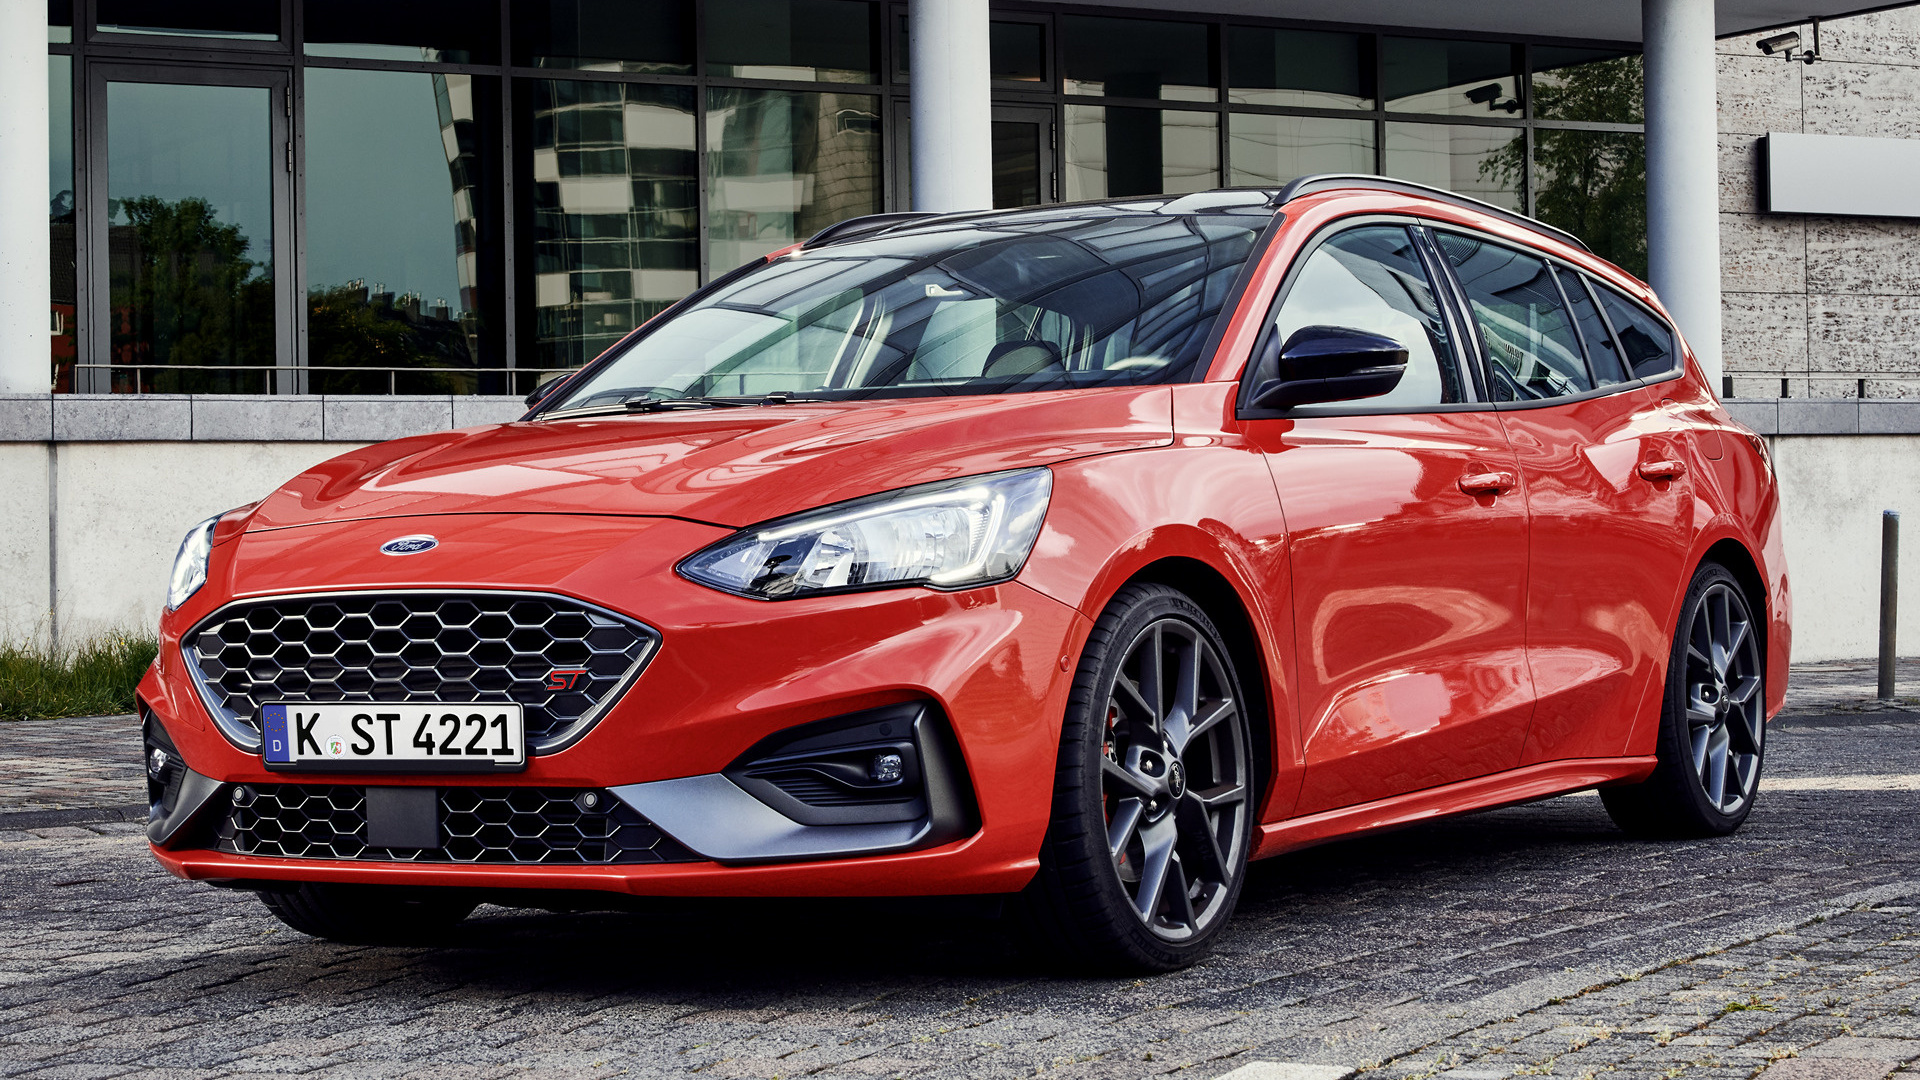 2018 Ford Focus St >> 2019 Ford Focus ST Turnier - Wallpapers and HD Images ...